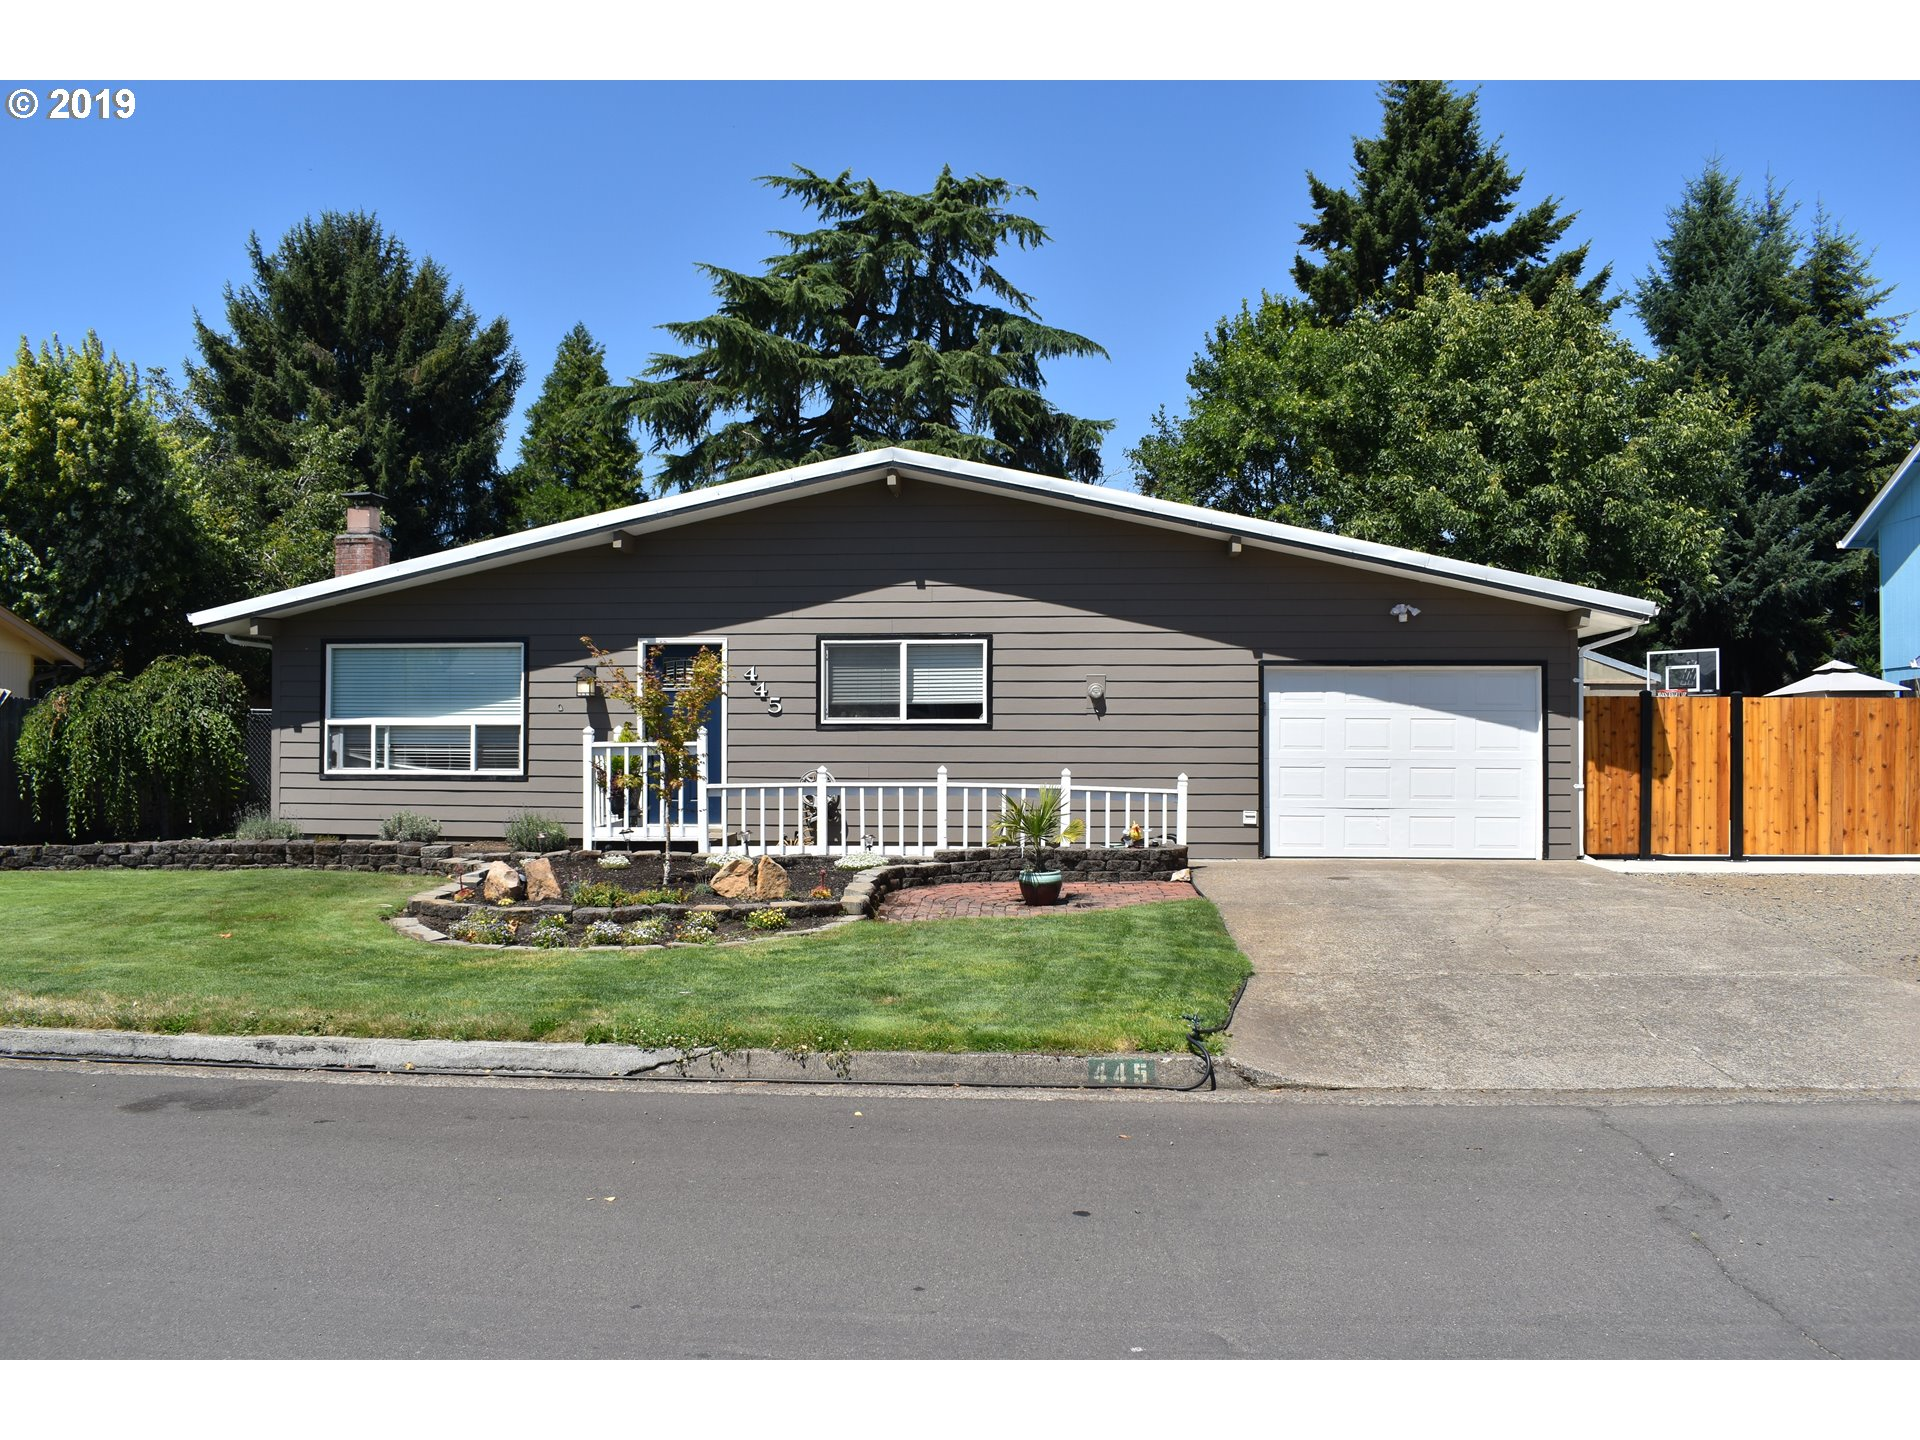 445 AUTUMN AVE Eugene Home Listings - Galand Haas Real Estate